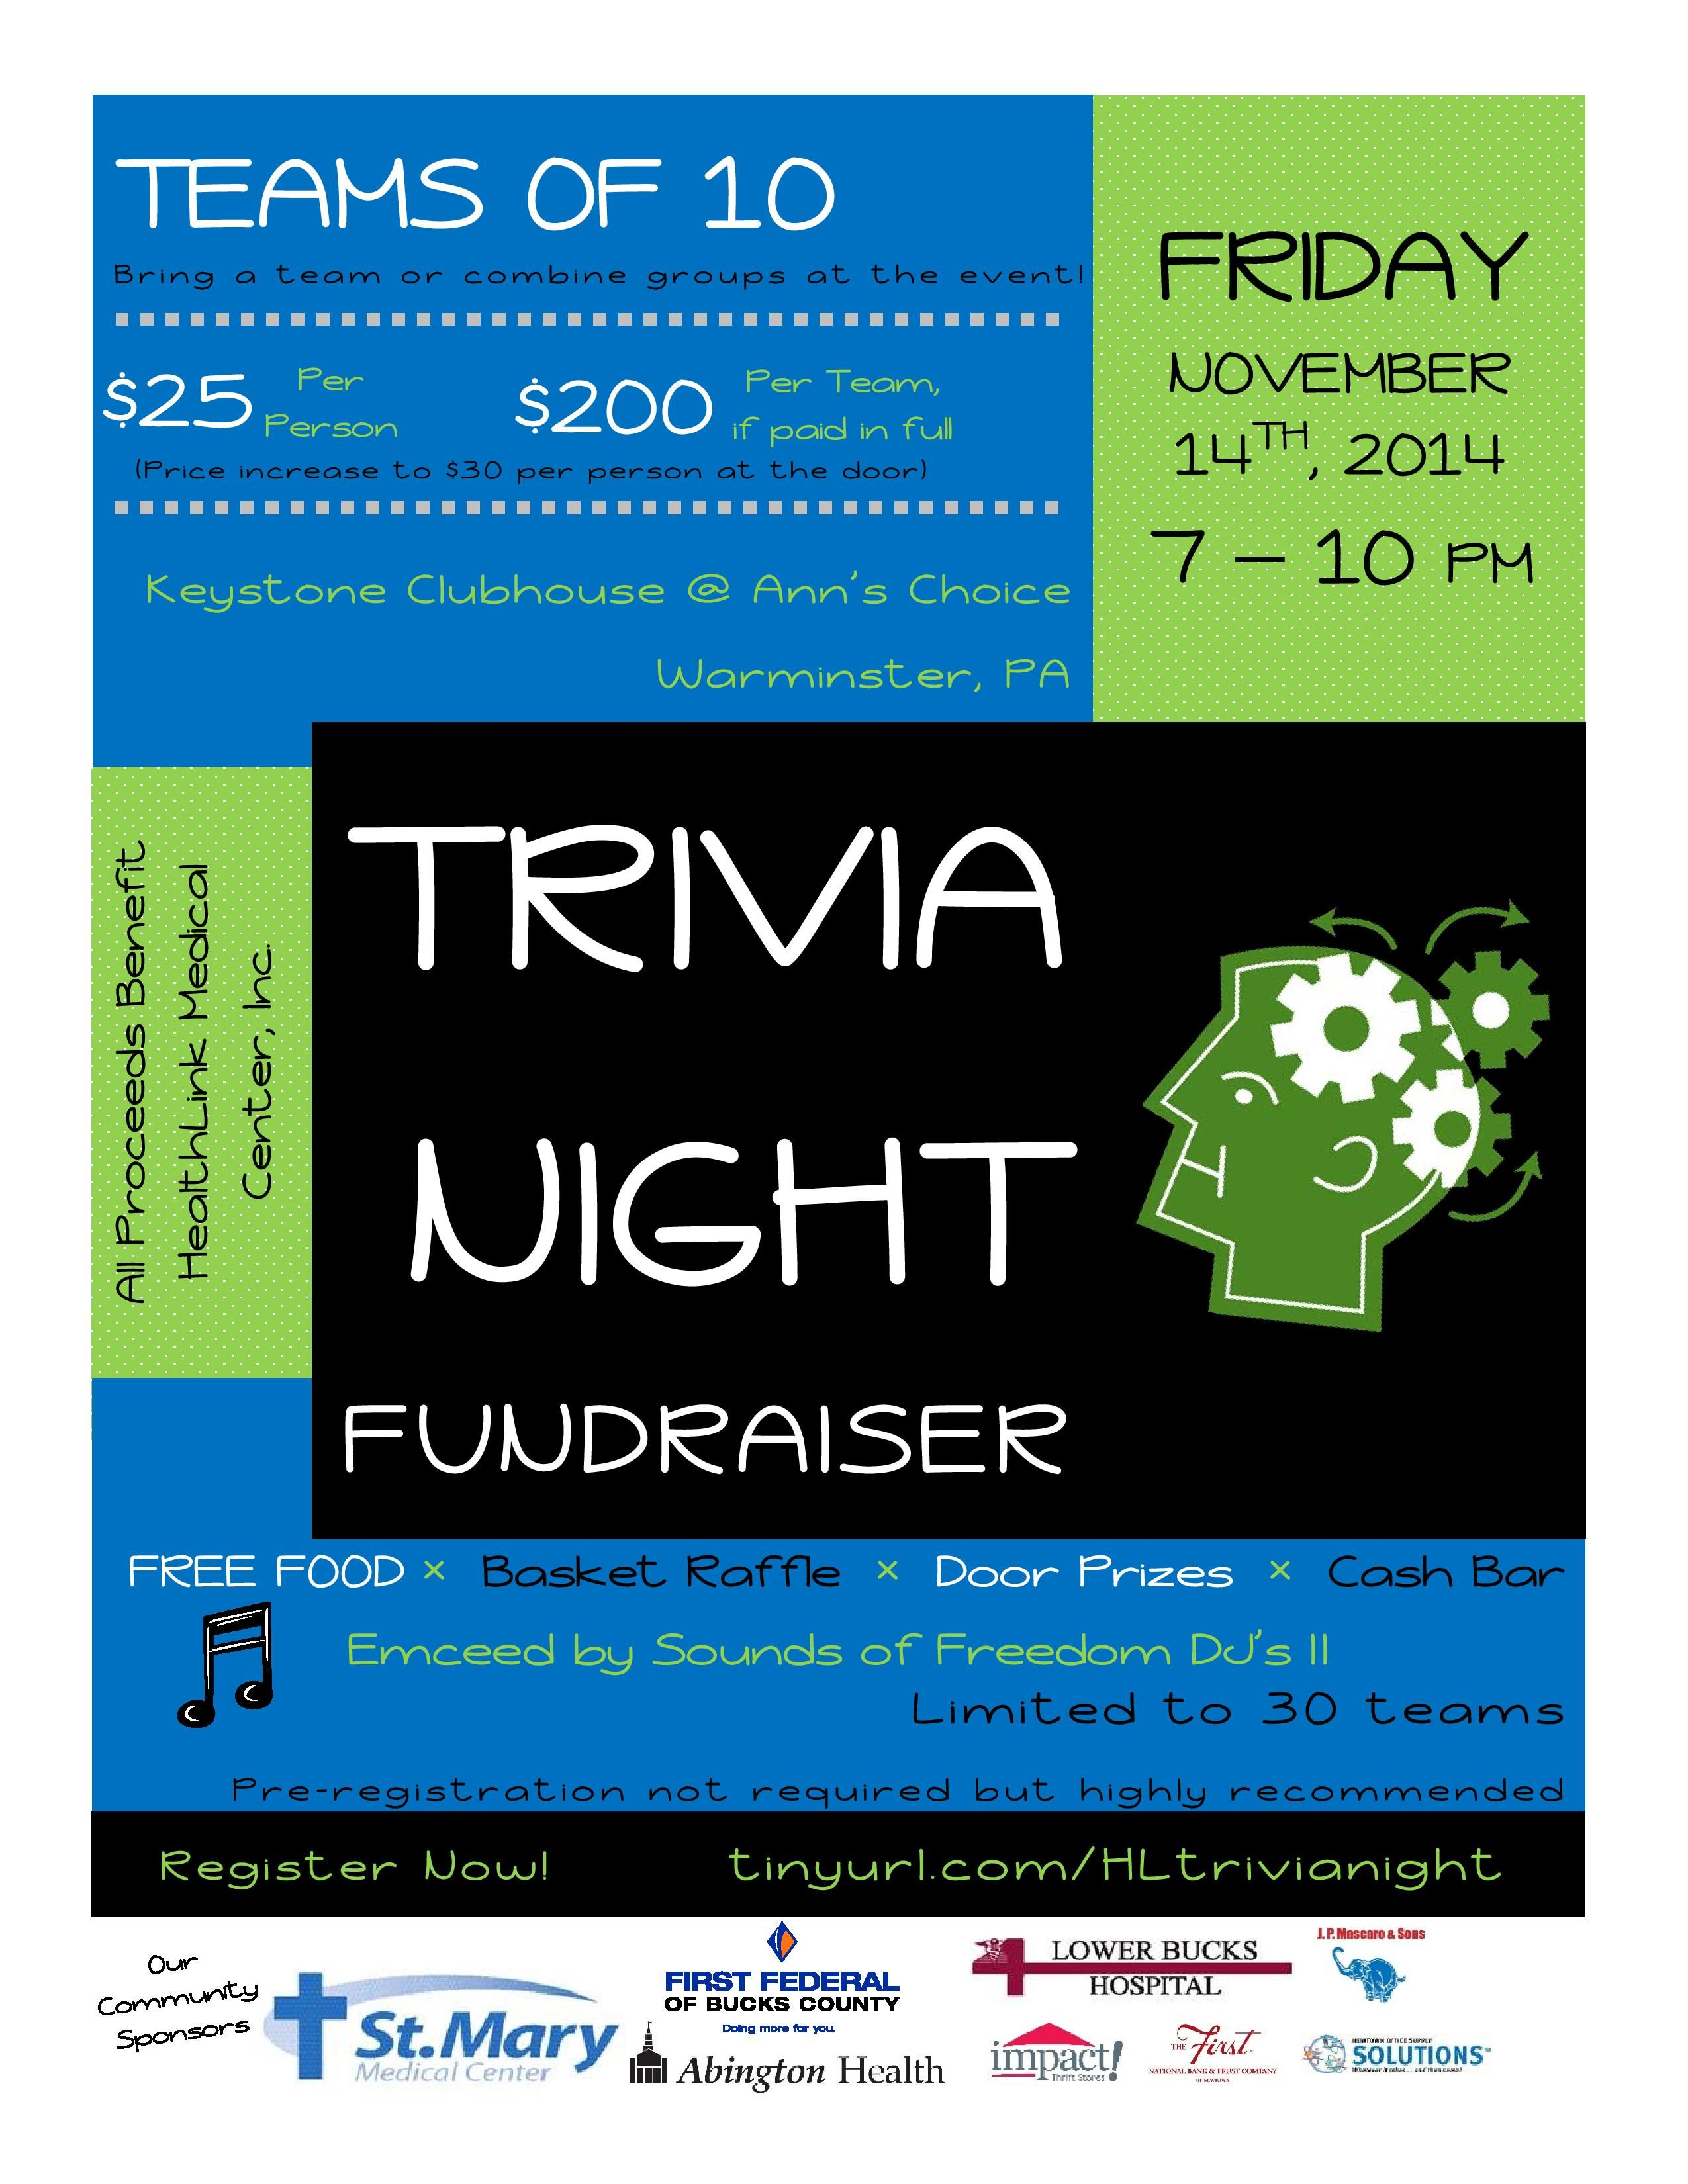 Trivia night fundraiser prizes